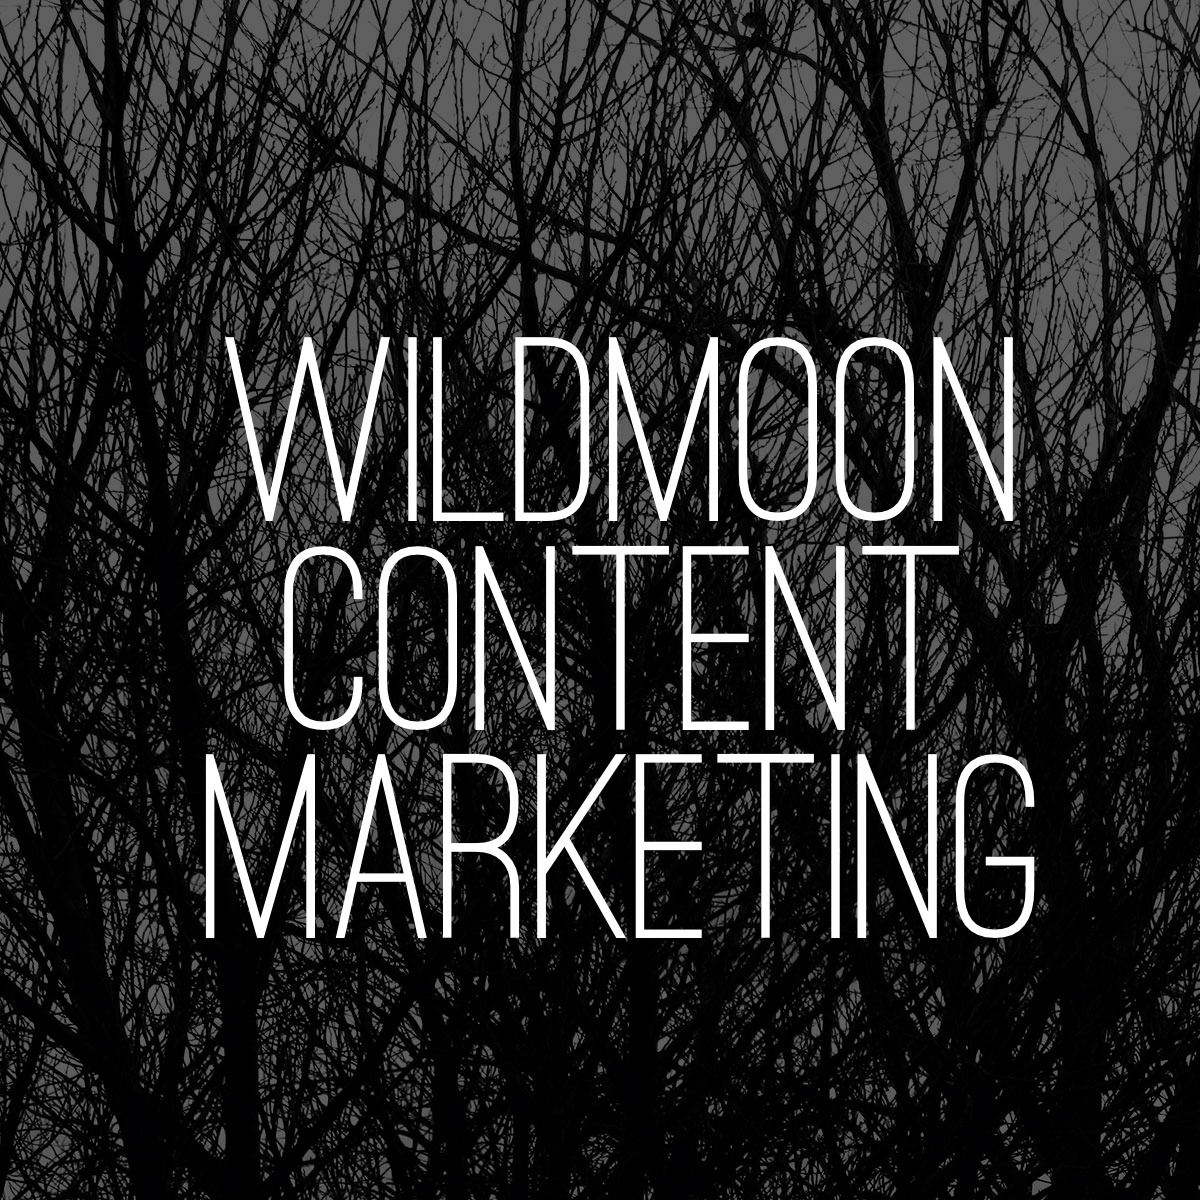 Content marketing is a must for every modern business. Let us help youmaximise your online presence...